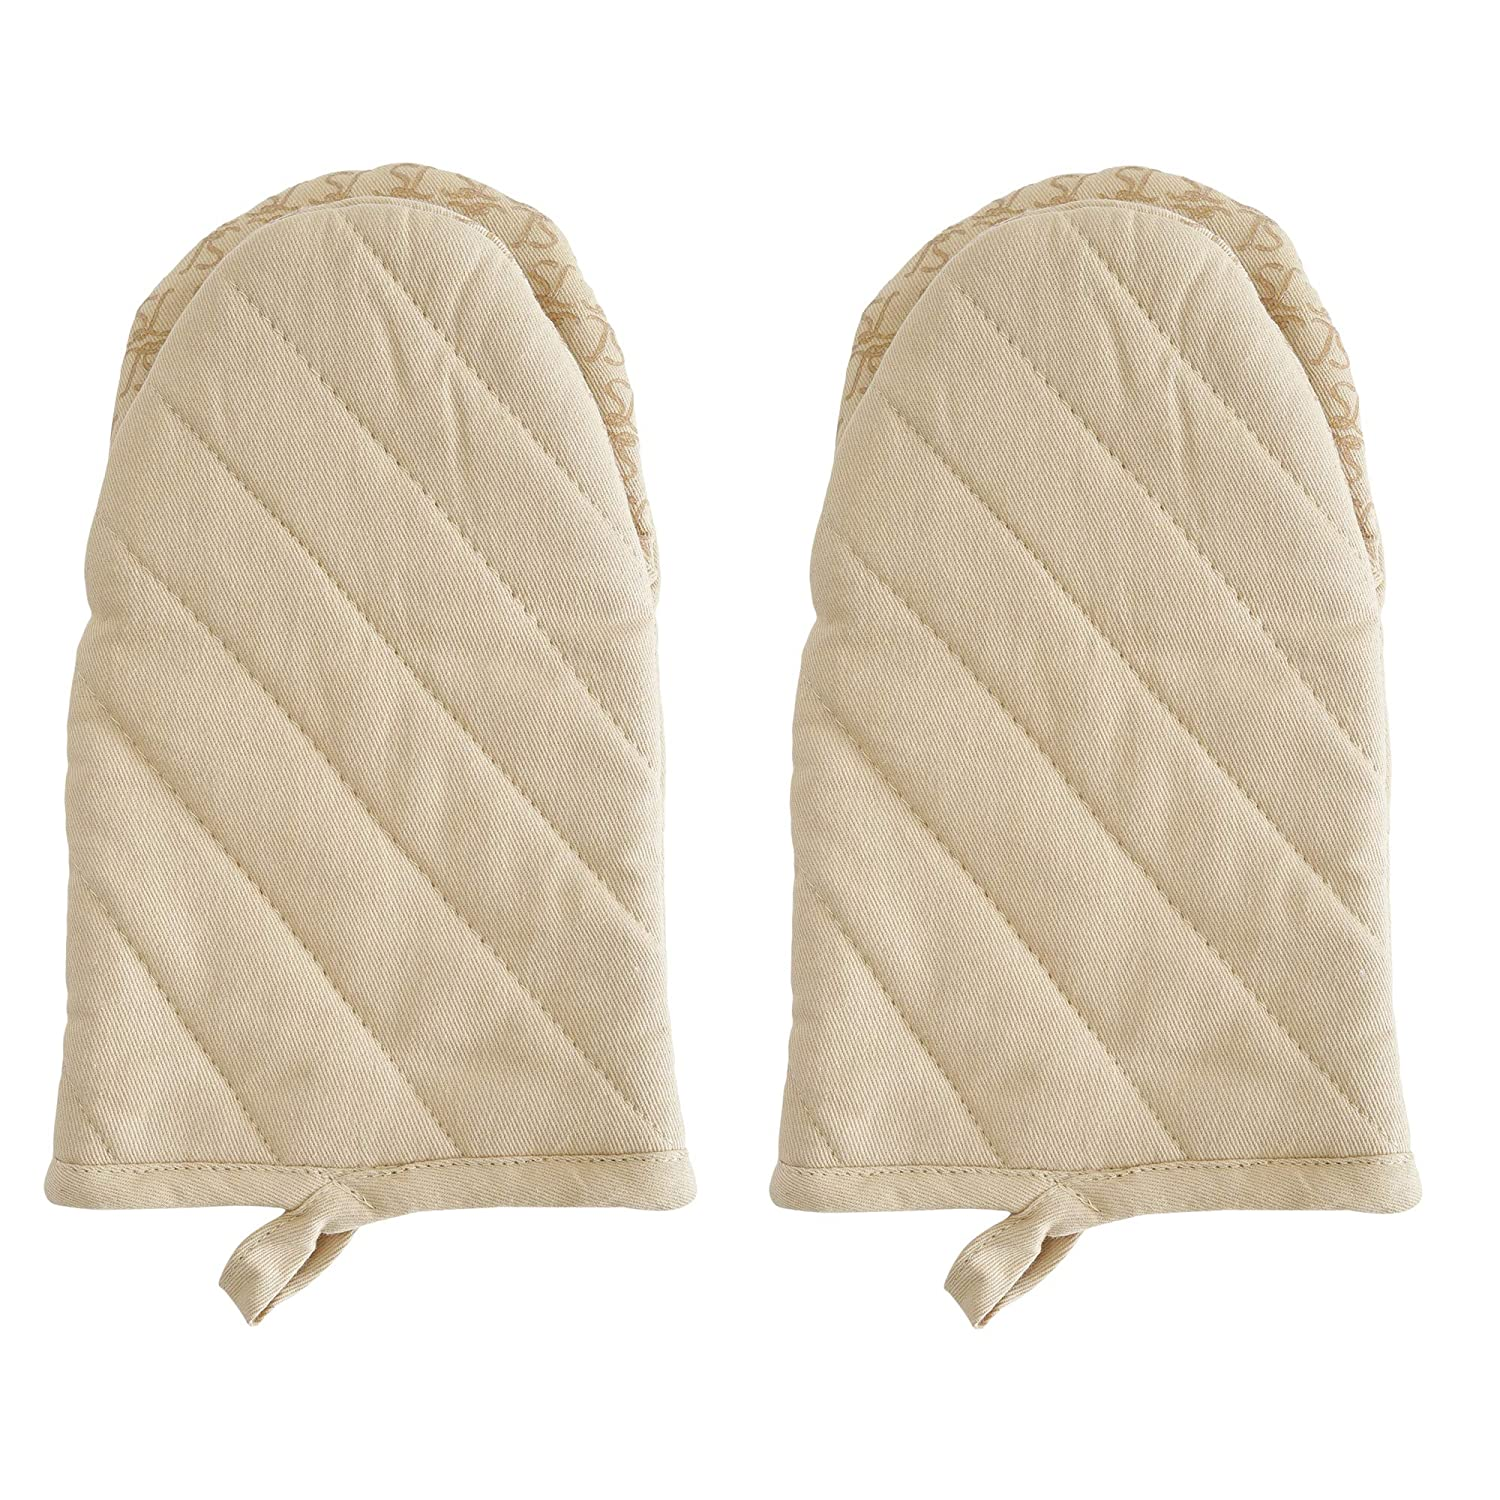 Oven Mitt, Solid Beige Color Set Of 2. Heat Resistant Cotton Quilted Oven Mitt Silicone Printed, Non Slip Grip, Terry Lining, Used For Cooking, BBQ, Baking, Grilling. Machine Washable.